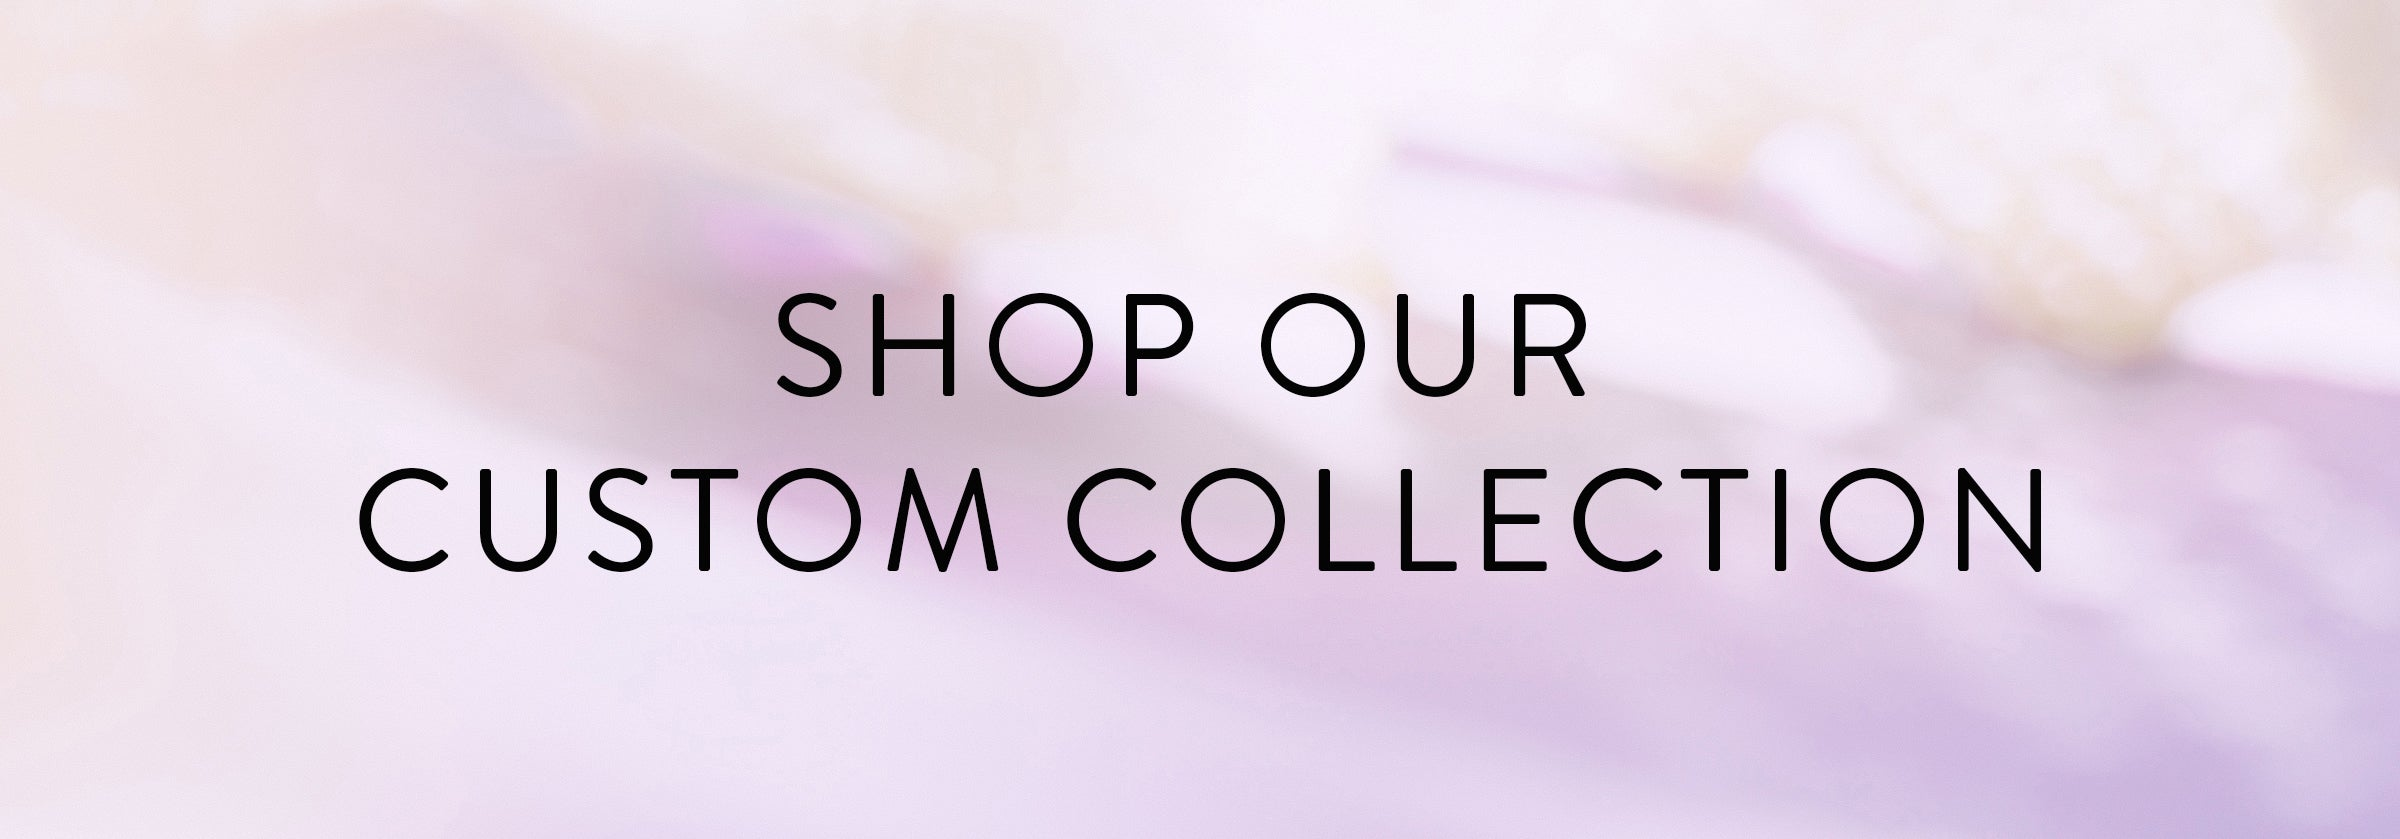 custom-collection-banner